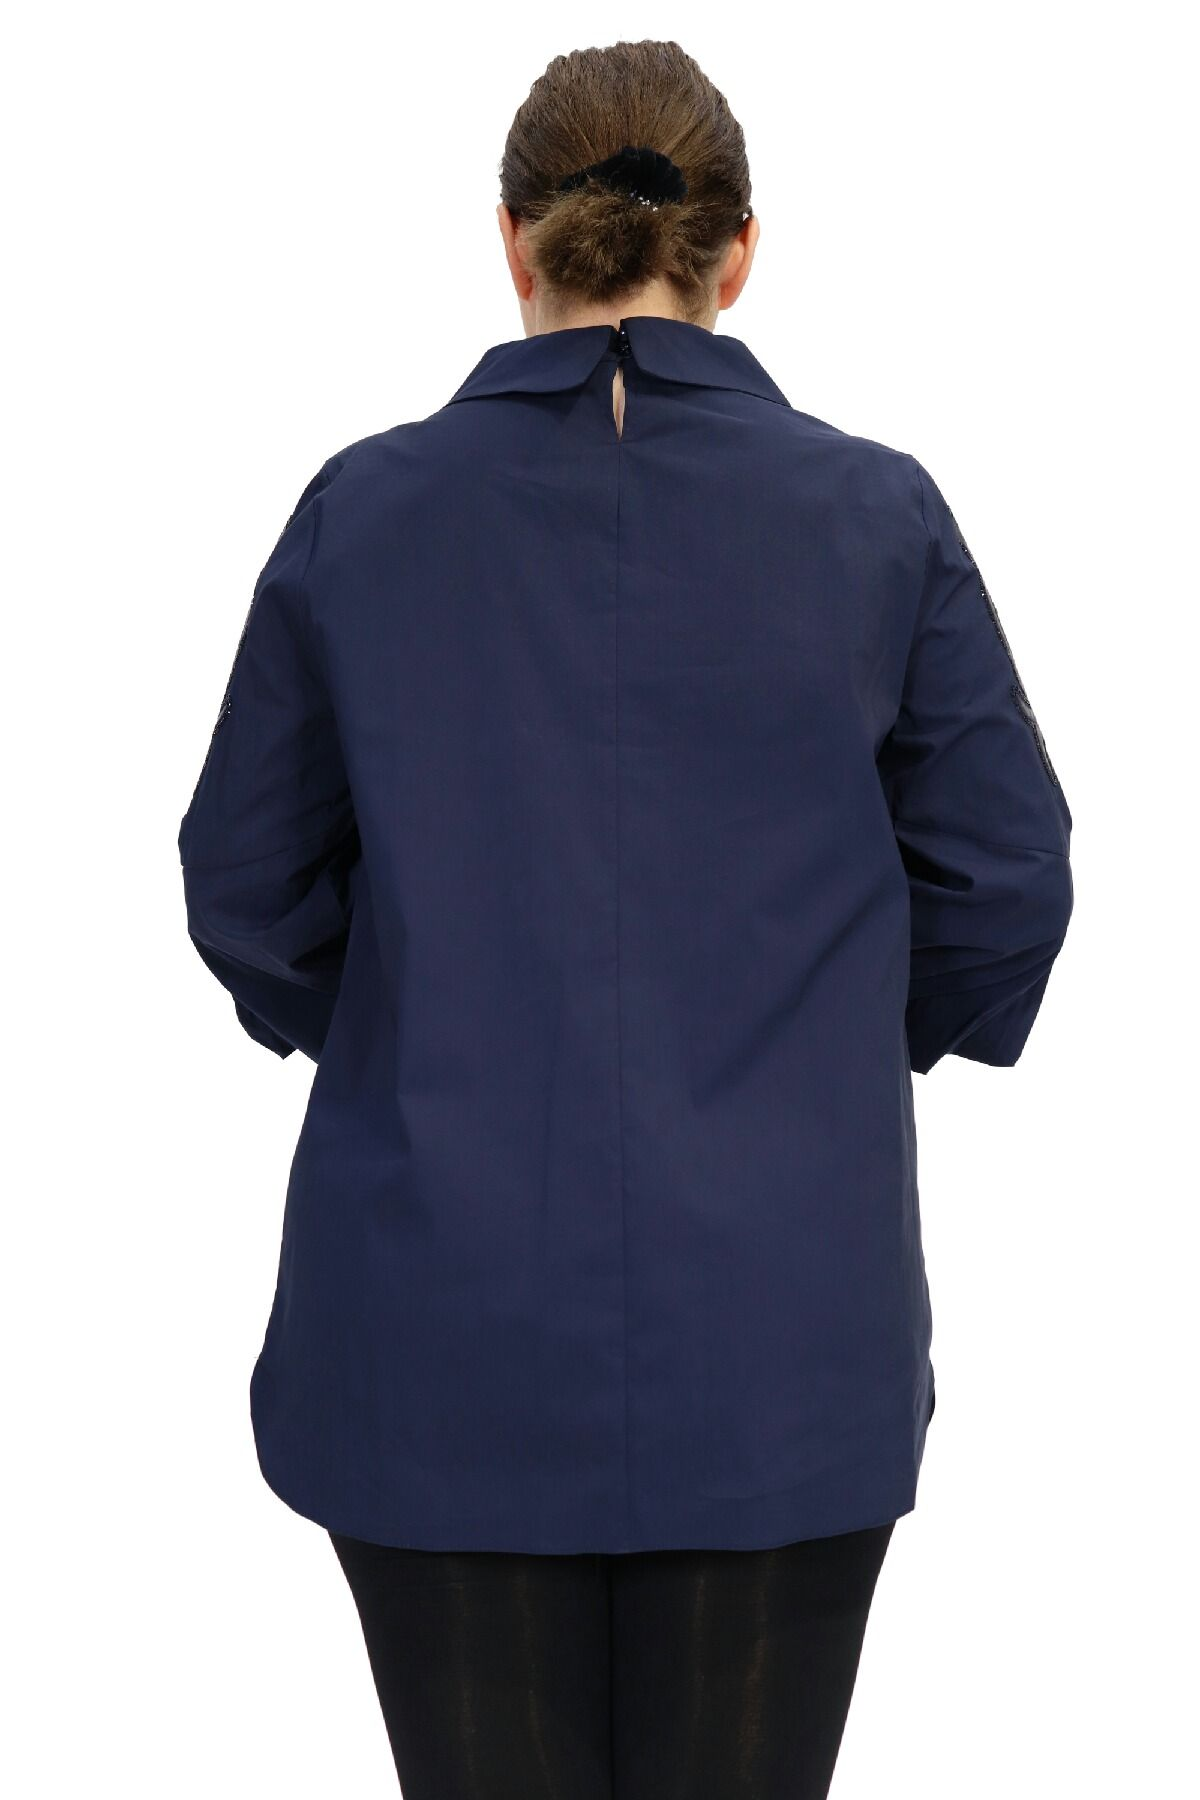 Blouses-Dark Blue